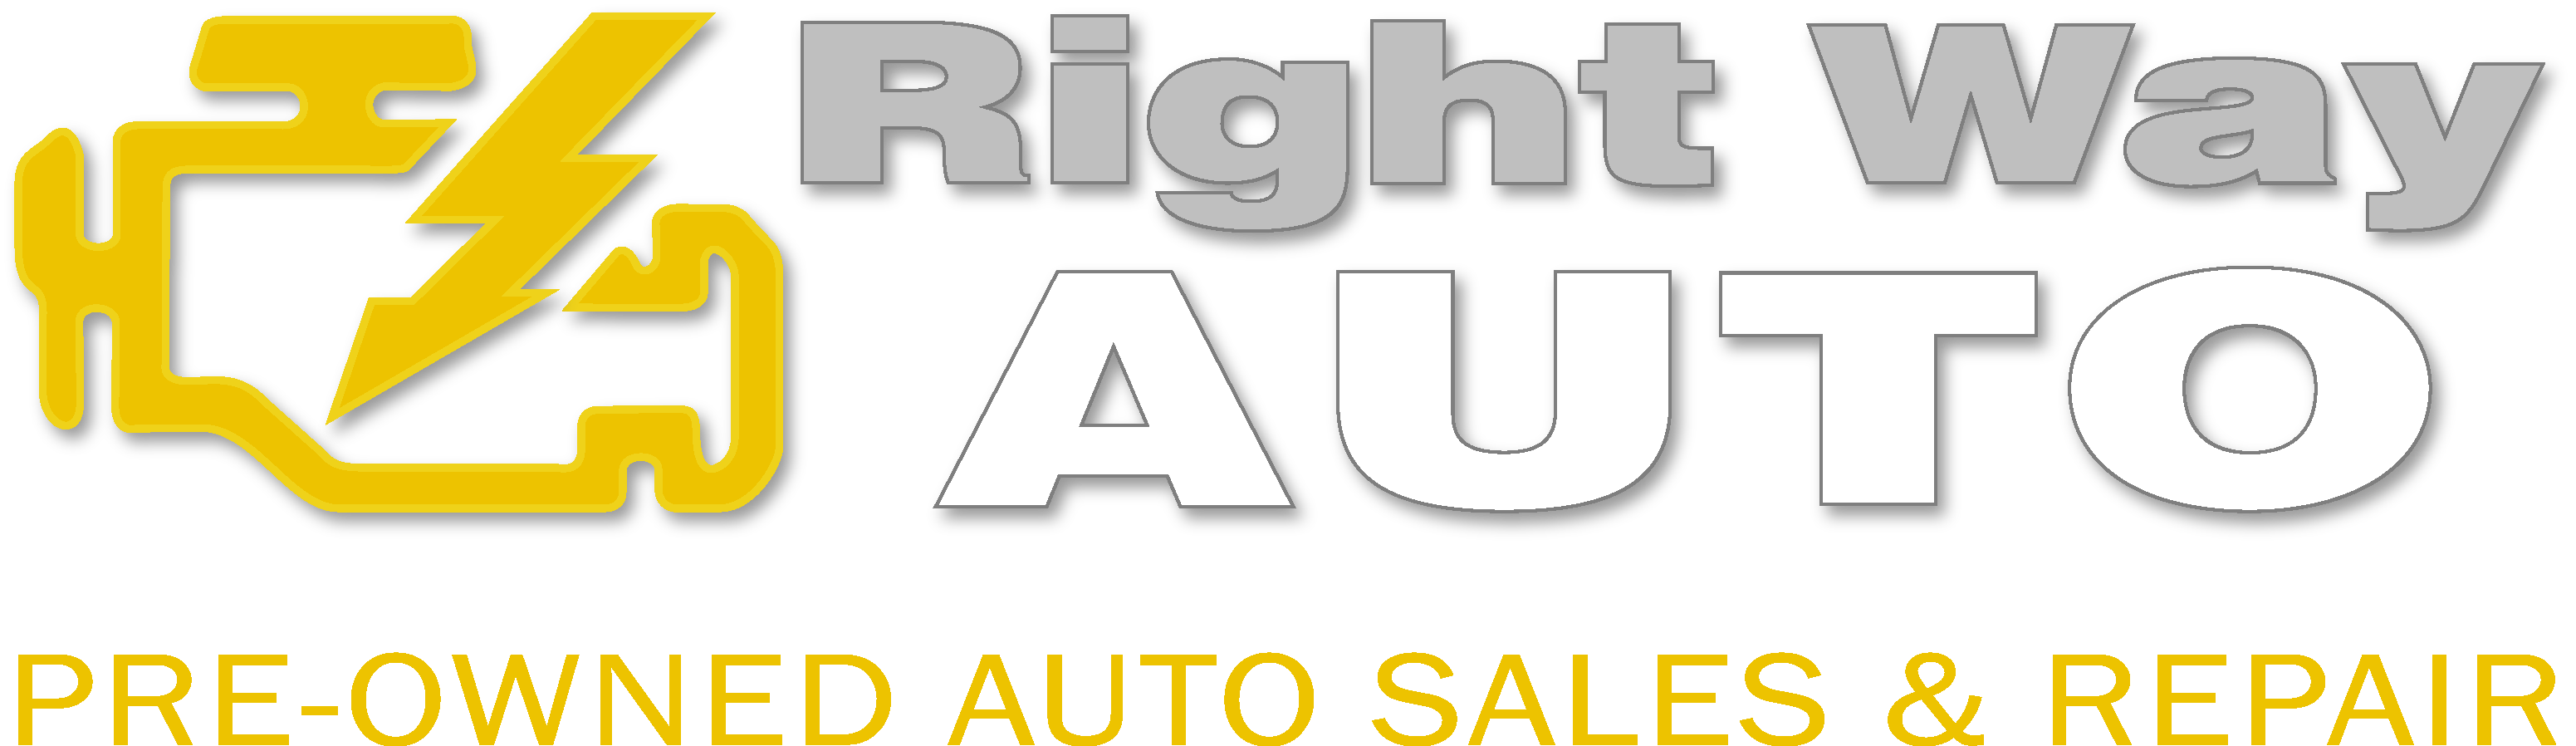 Rightway Auto Sales >> Right Way Auto Sales Quality Pre Owned Vehicles In Hamilton